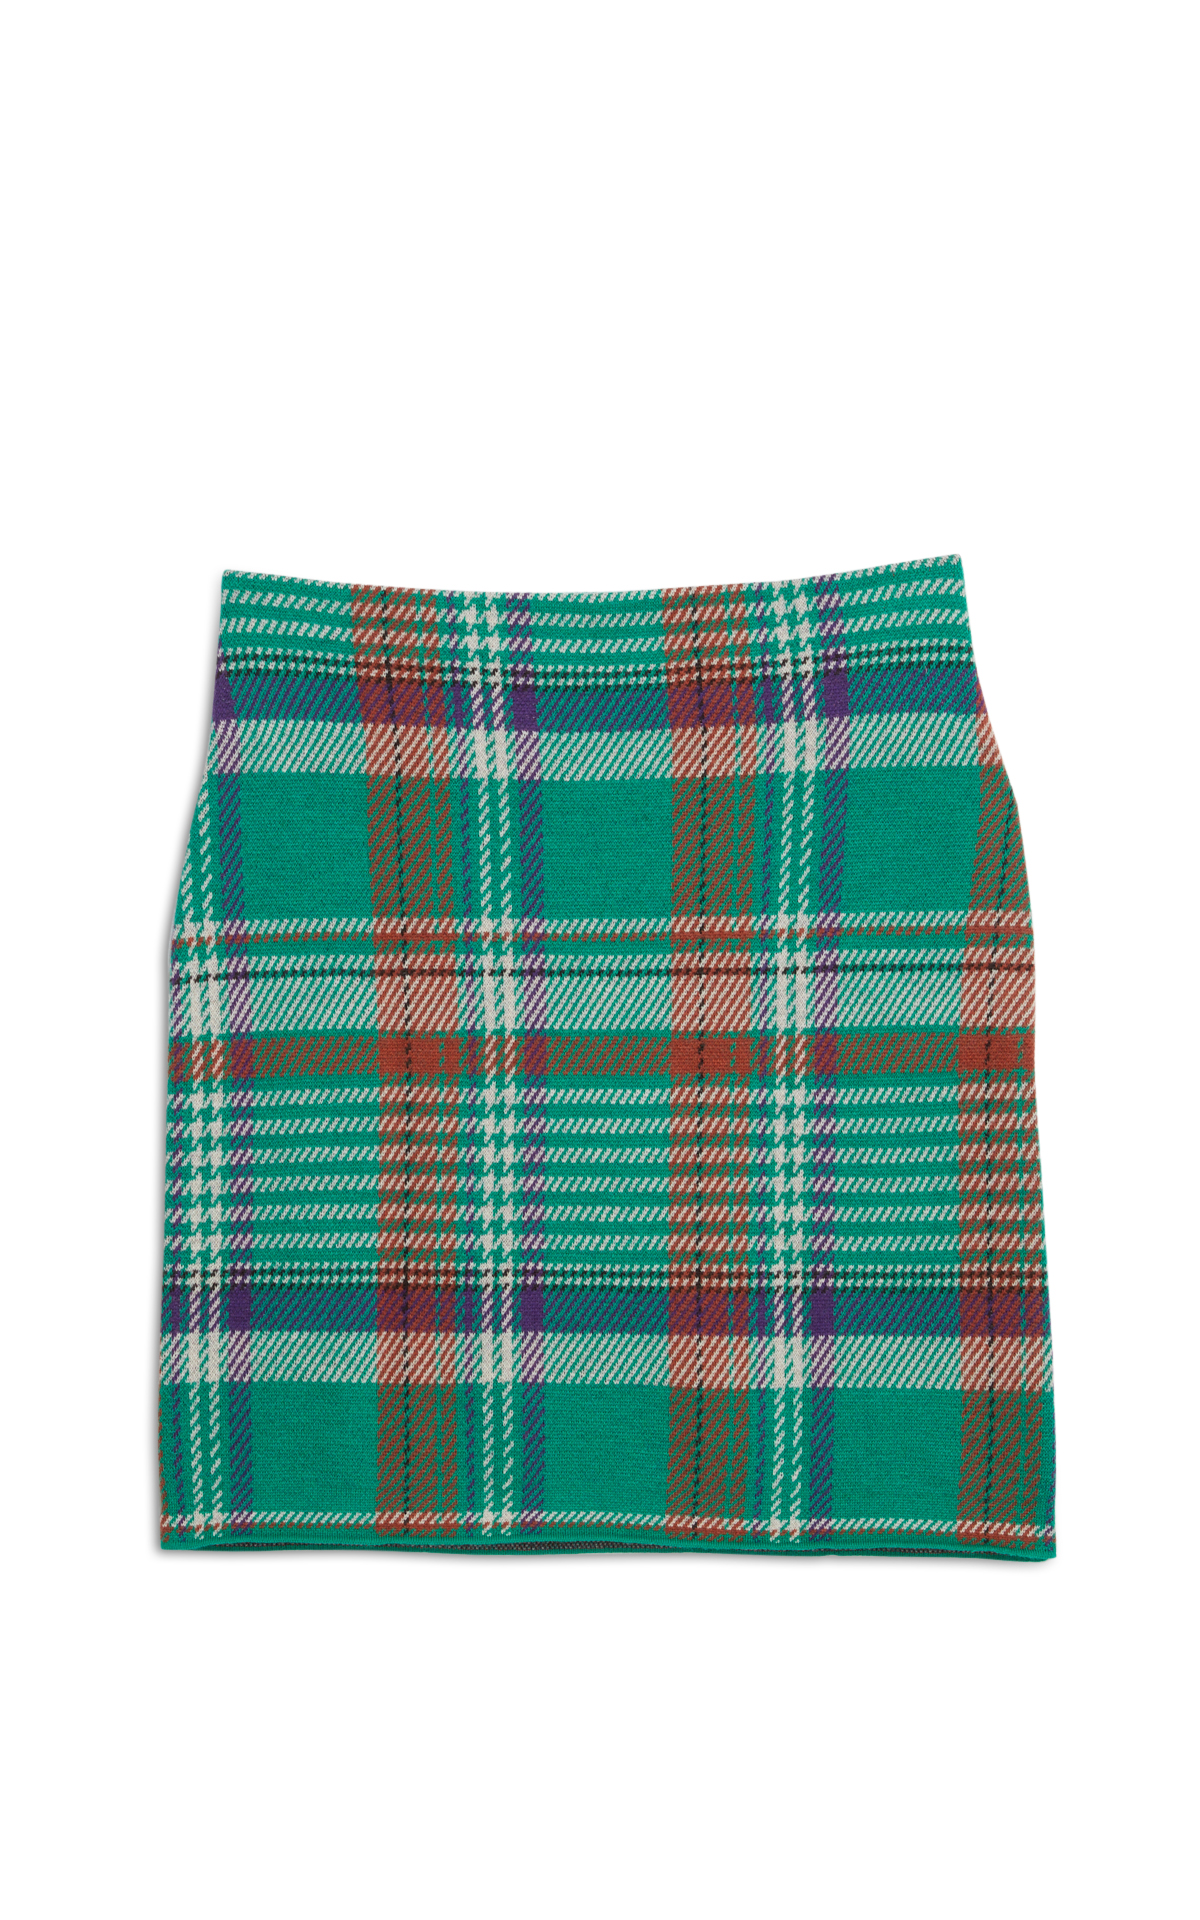 Eric Bompard green checked skirt la vallée village